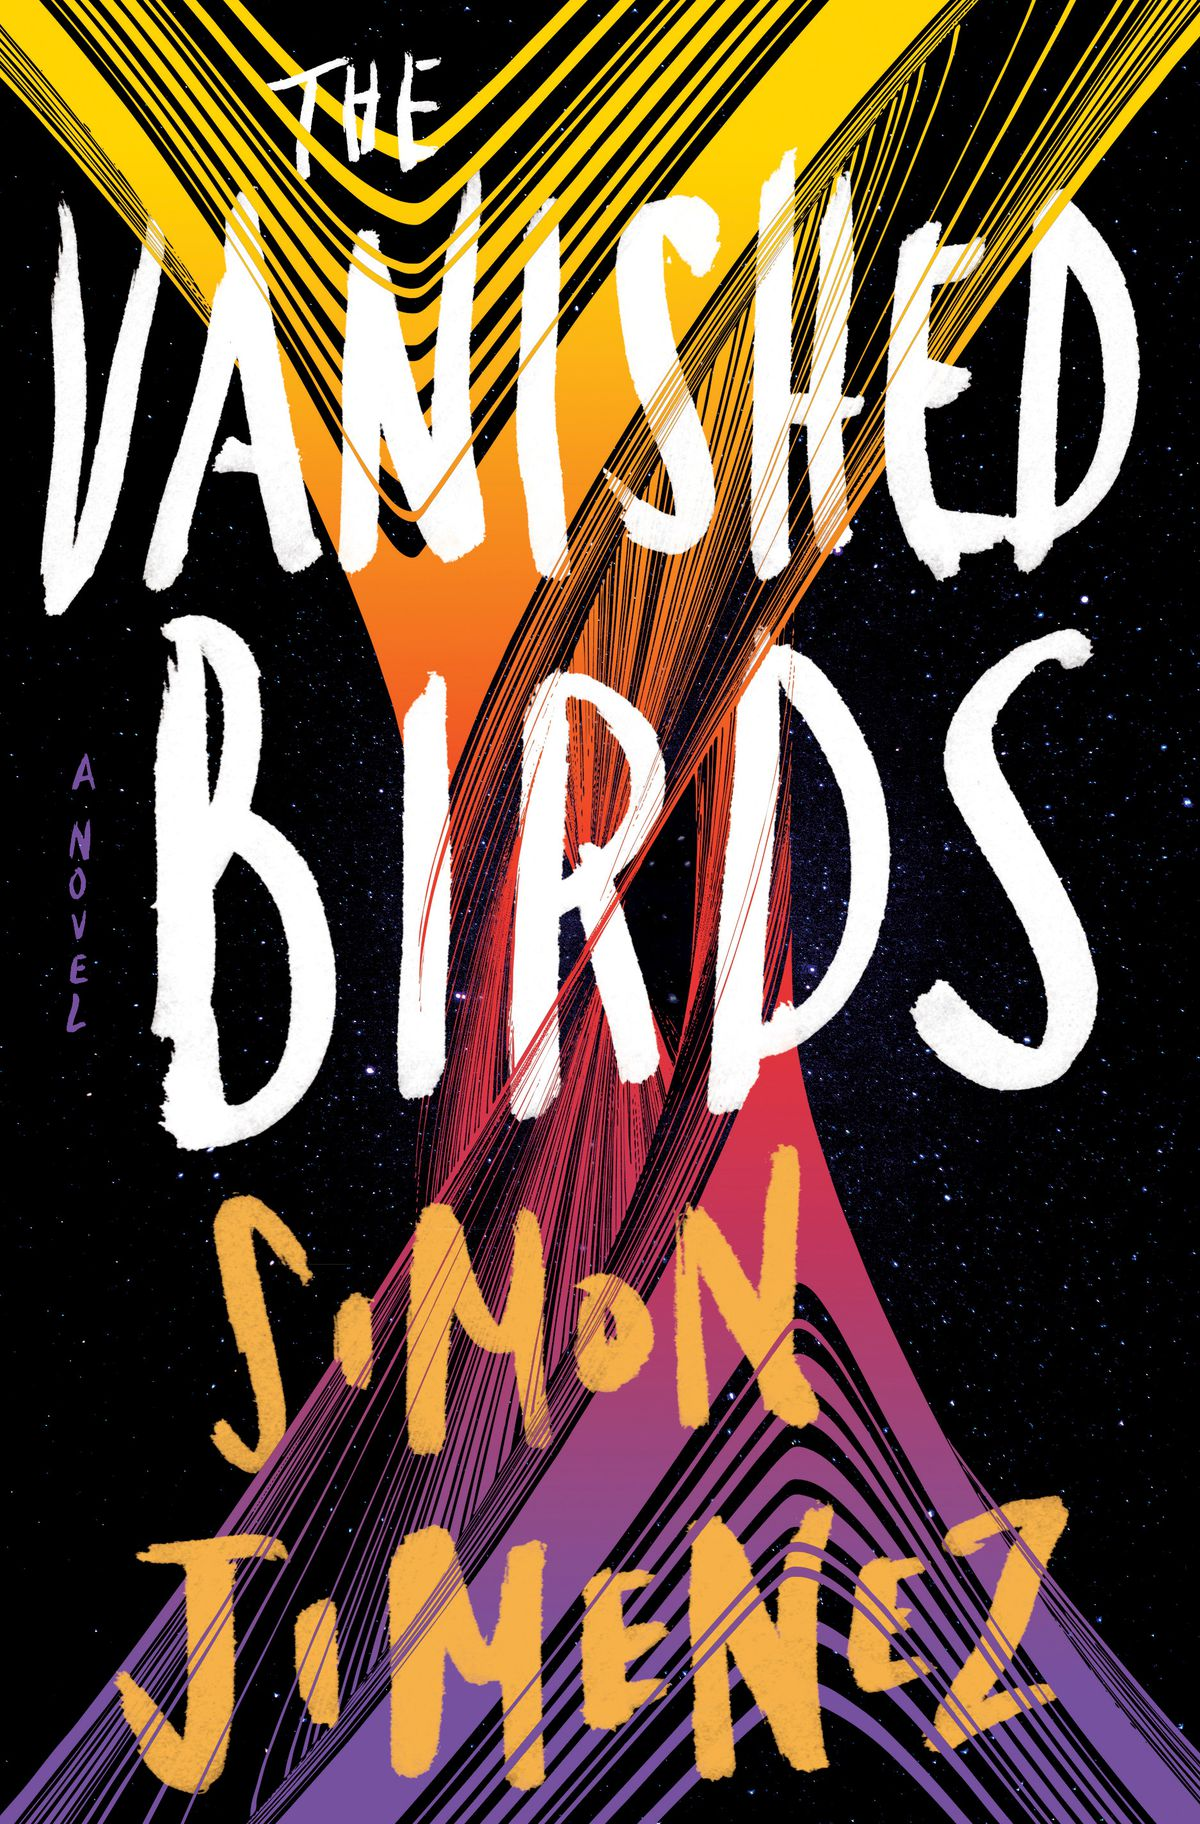 The Vanished Birds by Simon Jimenez cover has some multicolor stripes